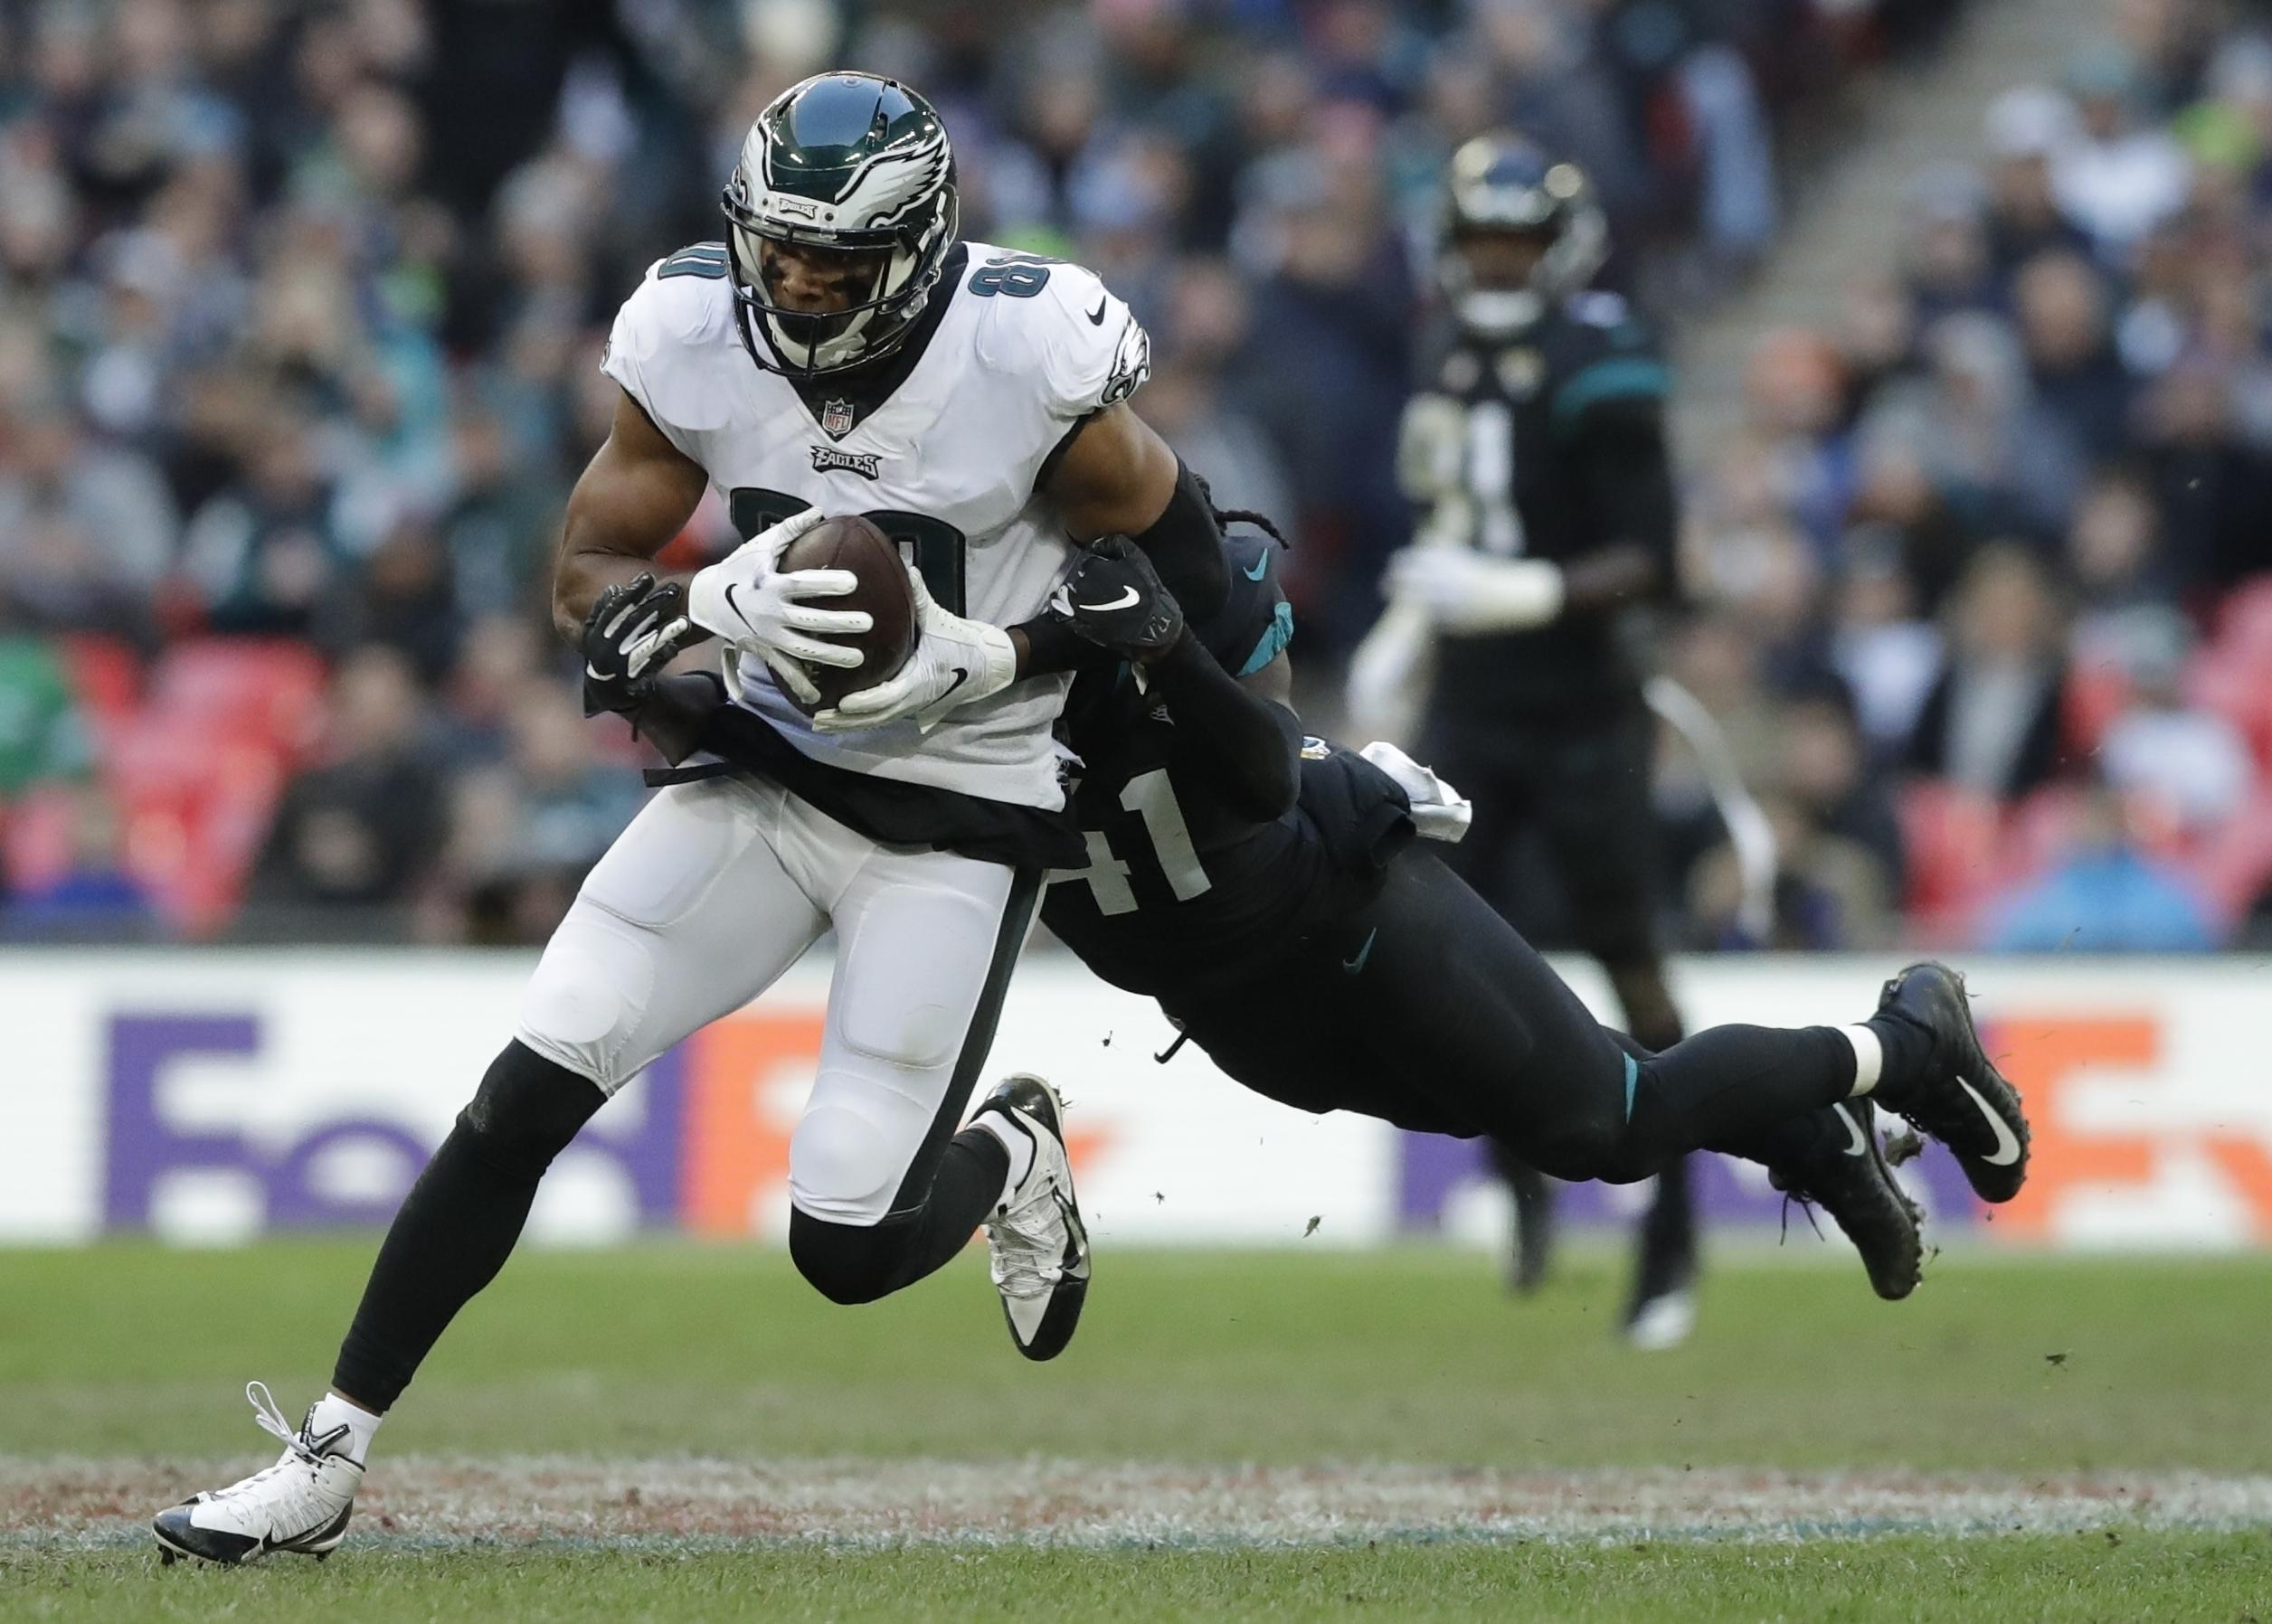 The Eagles took their season record to 4-4, while Jaguars struggle on